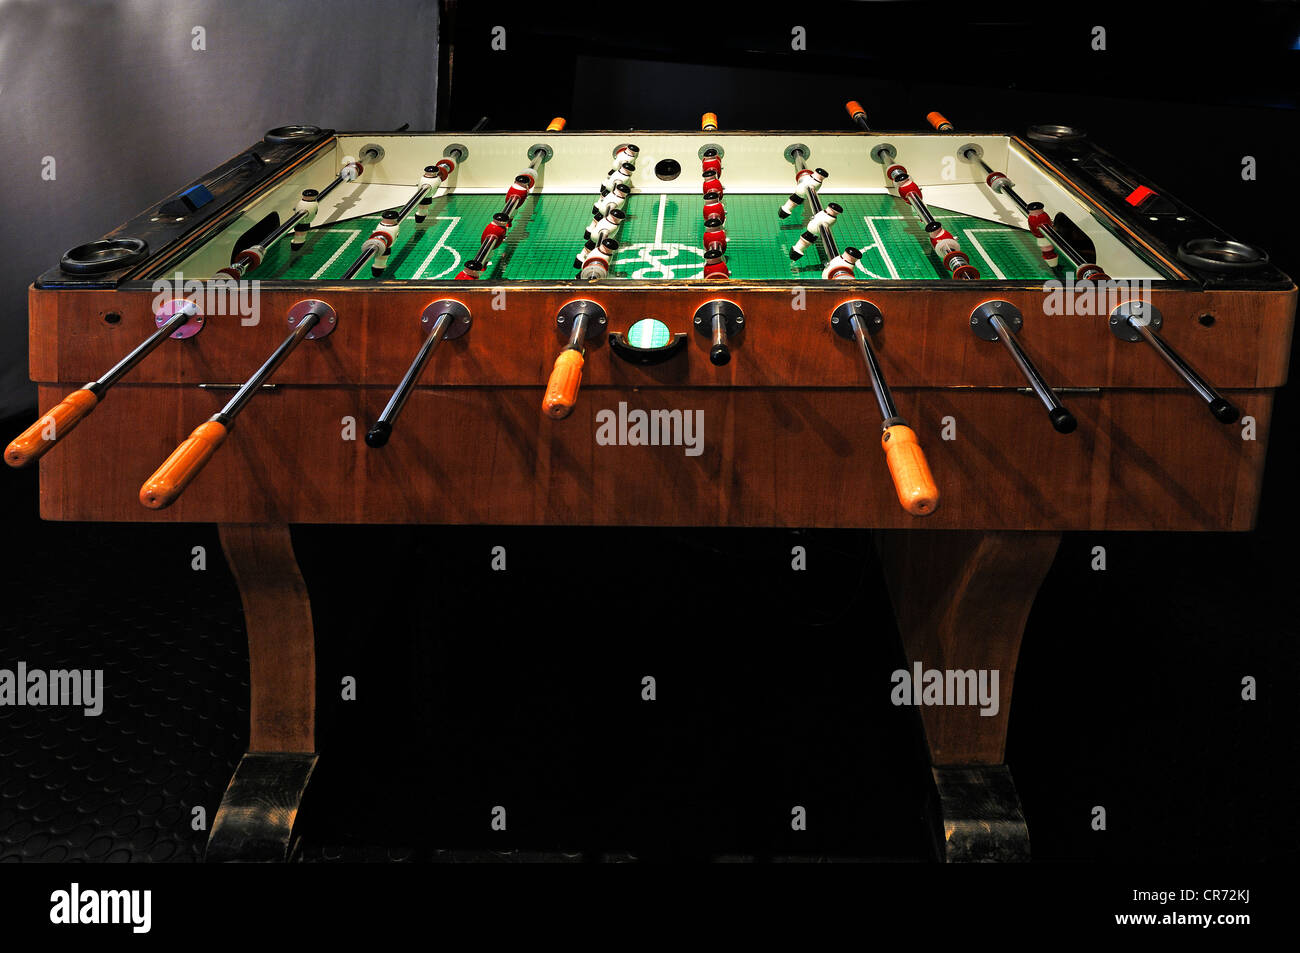 Table football, fussball or foosball table from the 50s, Museum for Industrial Culture, Aeussere Sulzbacher Strasse - Stock Image